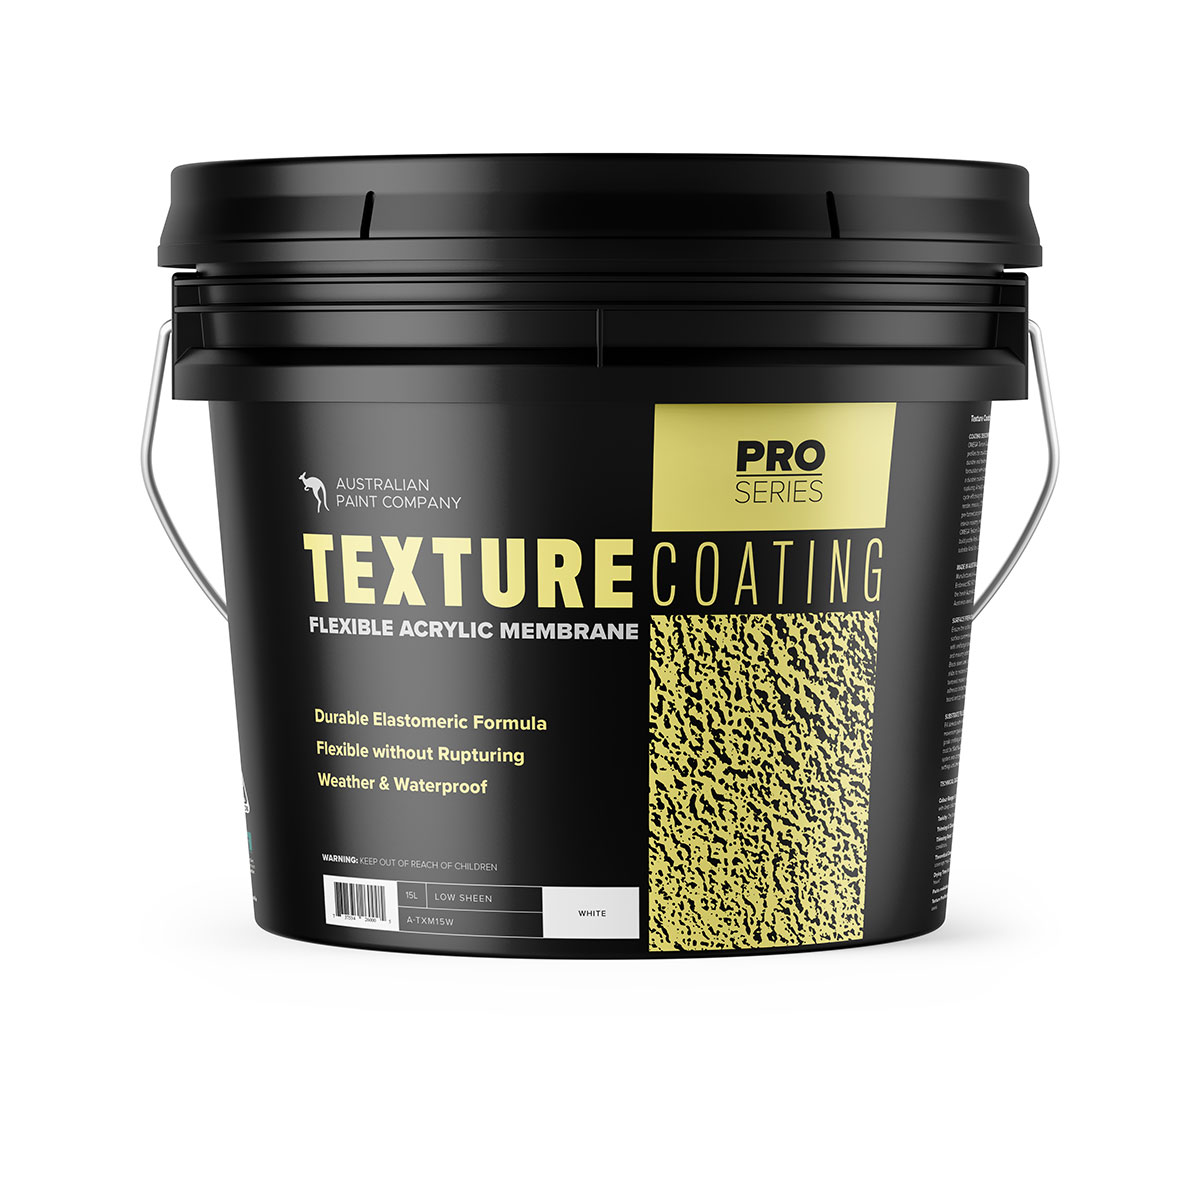 Pro series texture coating